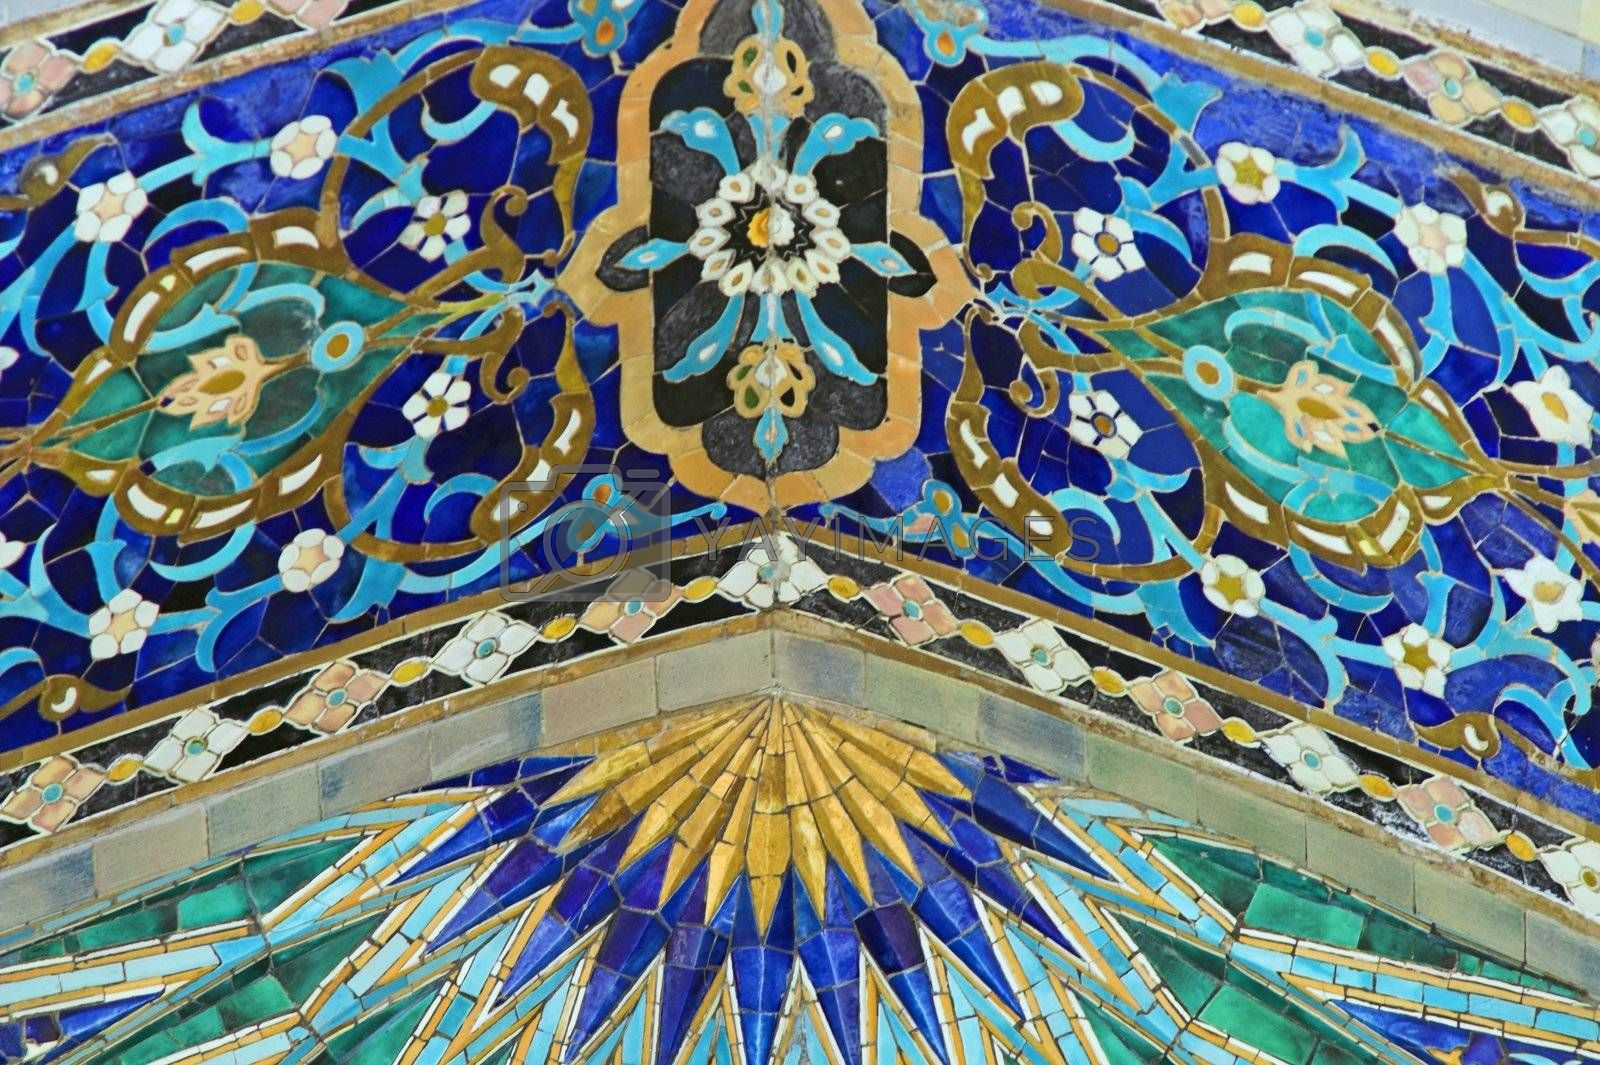 Fragment of tiled wall with Arabic mosaic of ancient mosque in Saint Petersburg, Russia.